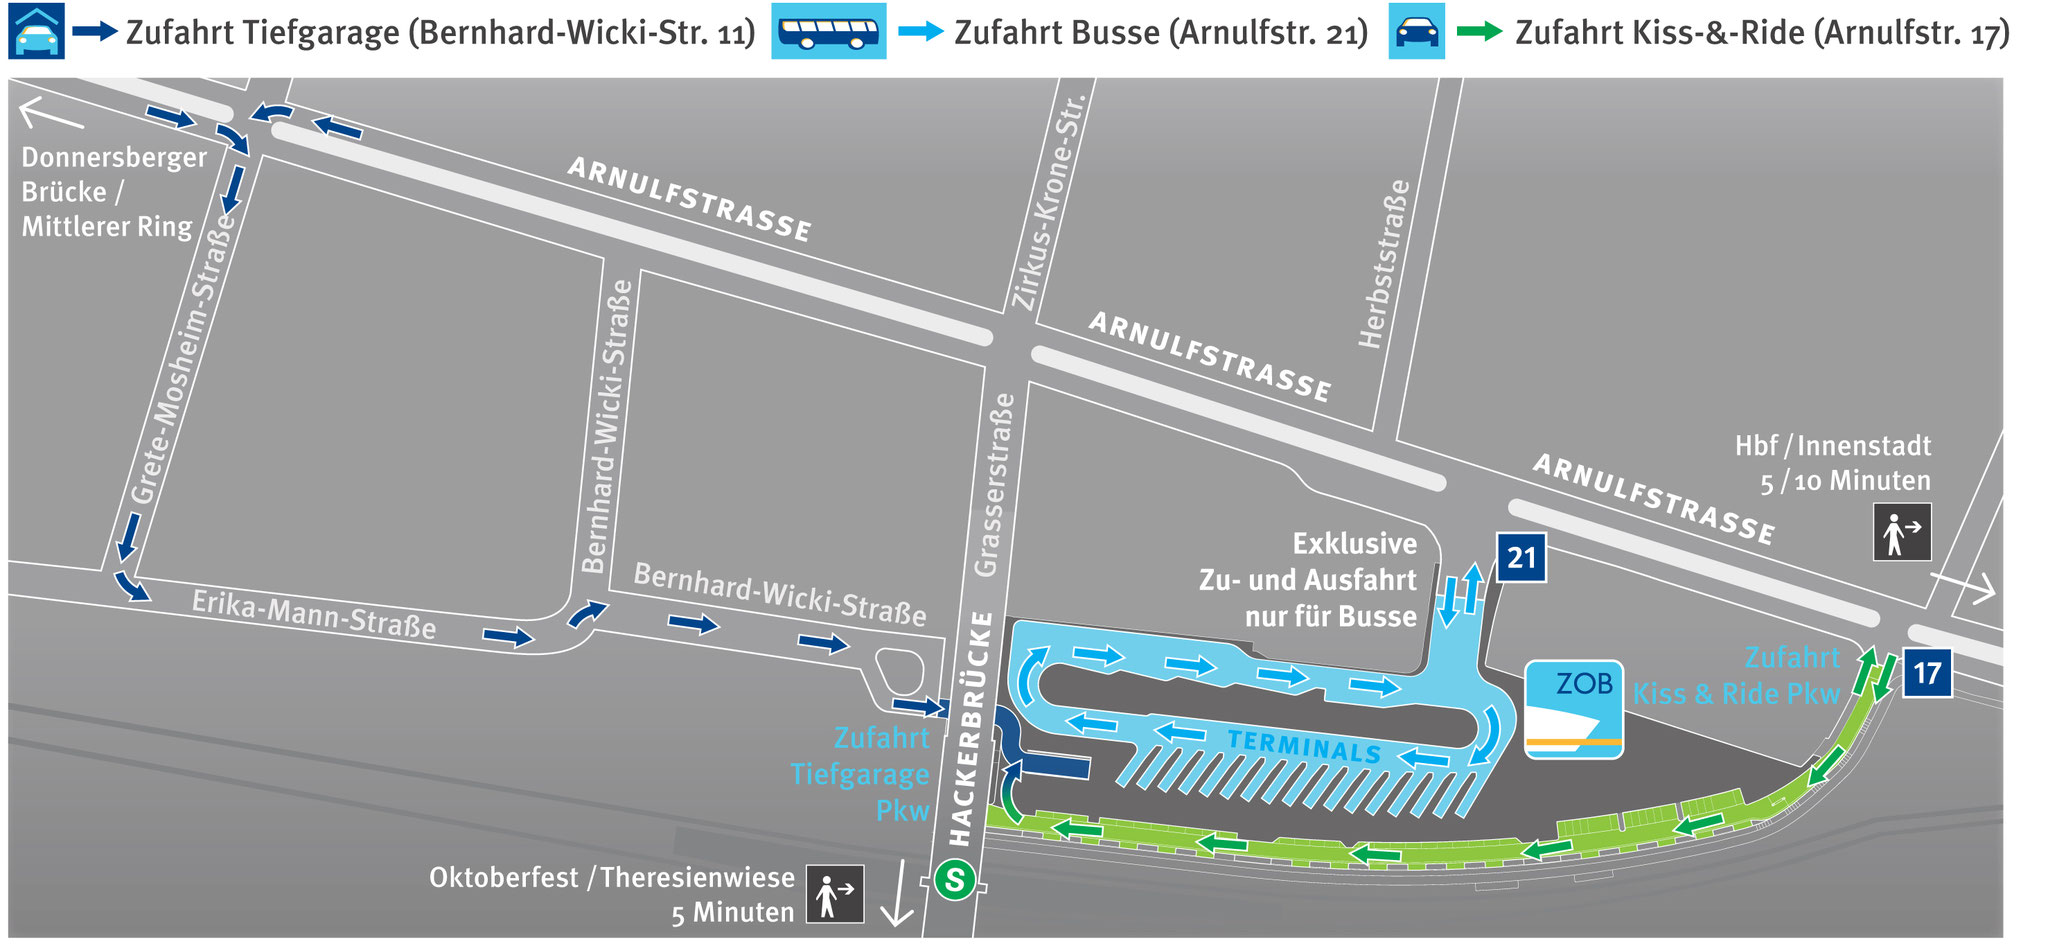 Zob Munich Central Bus Station Munich Timetable And